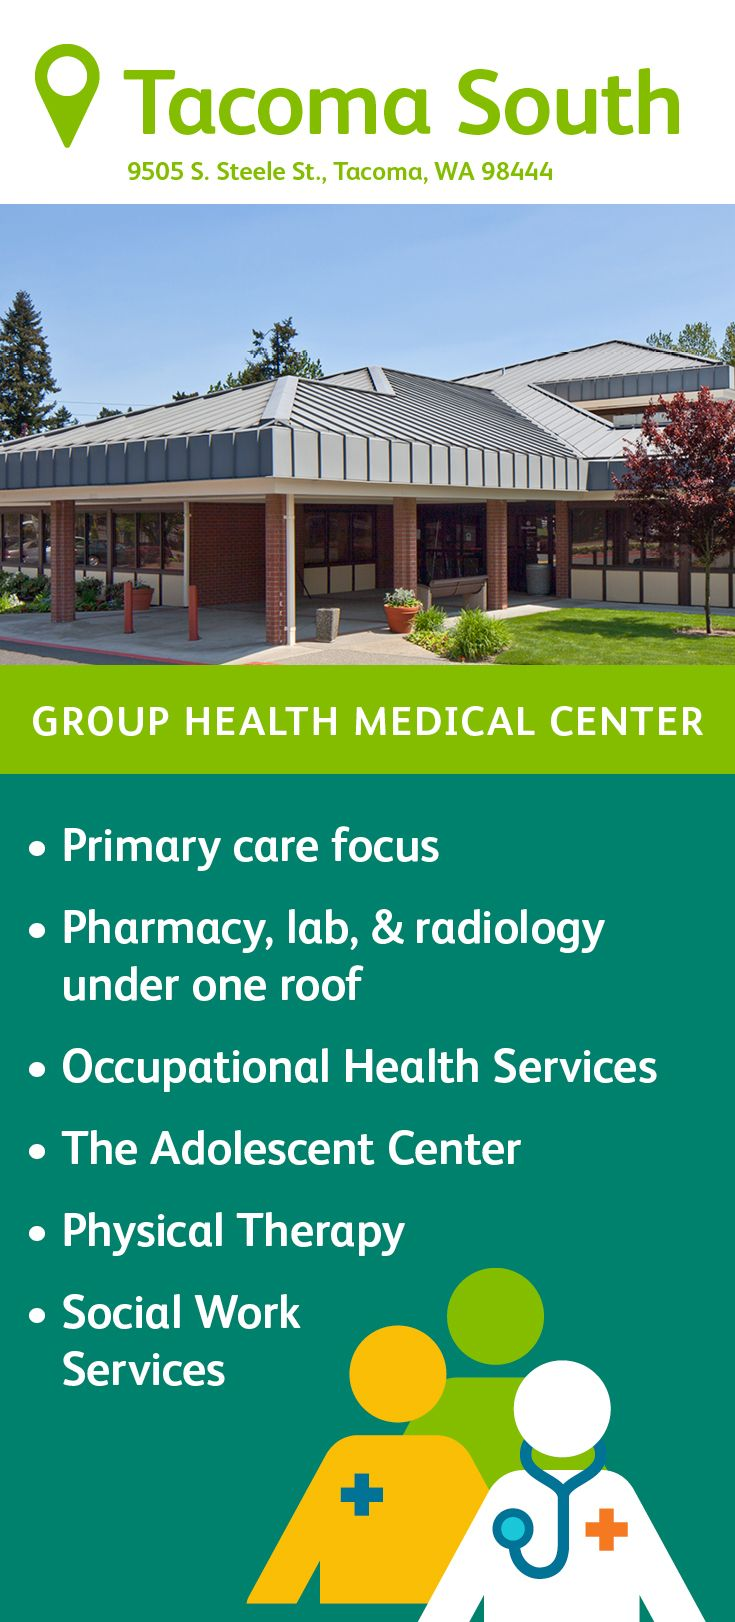 The Group Health South Medical Center features